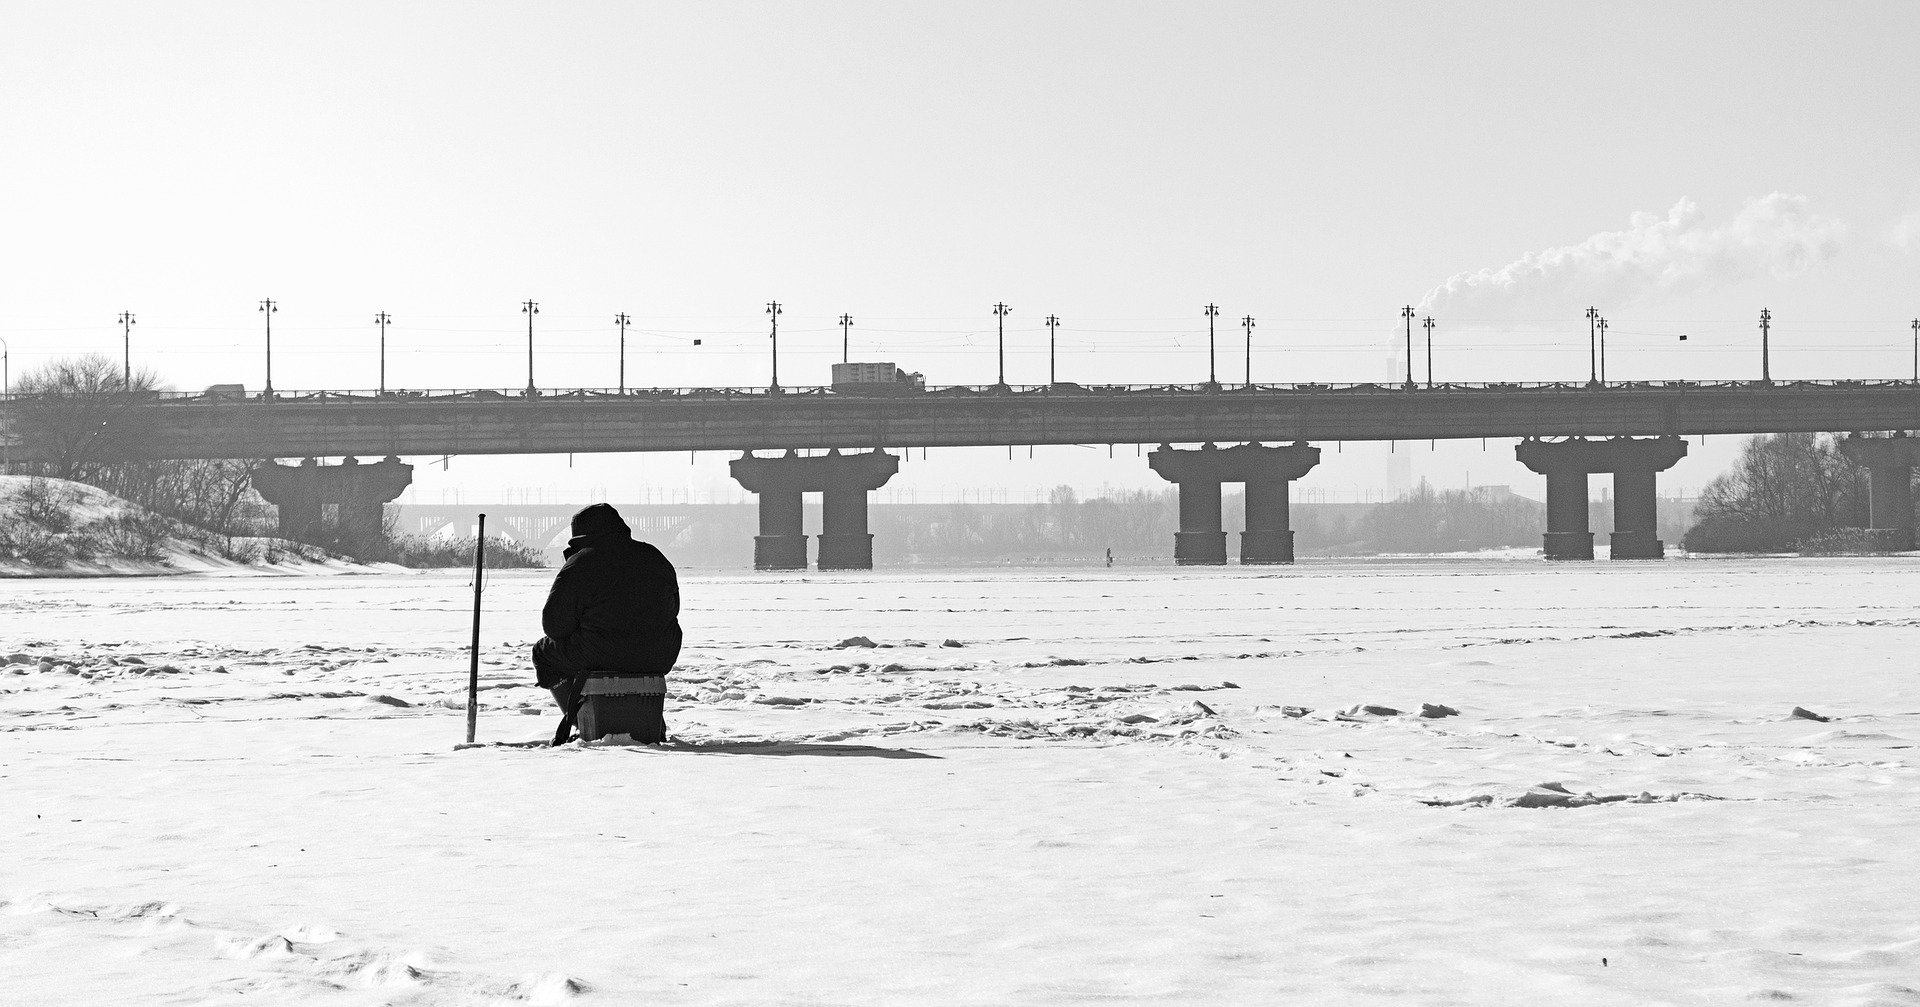 A man ice fishing in a frozen over river. | Photo: Pixabay.